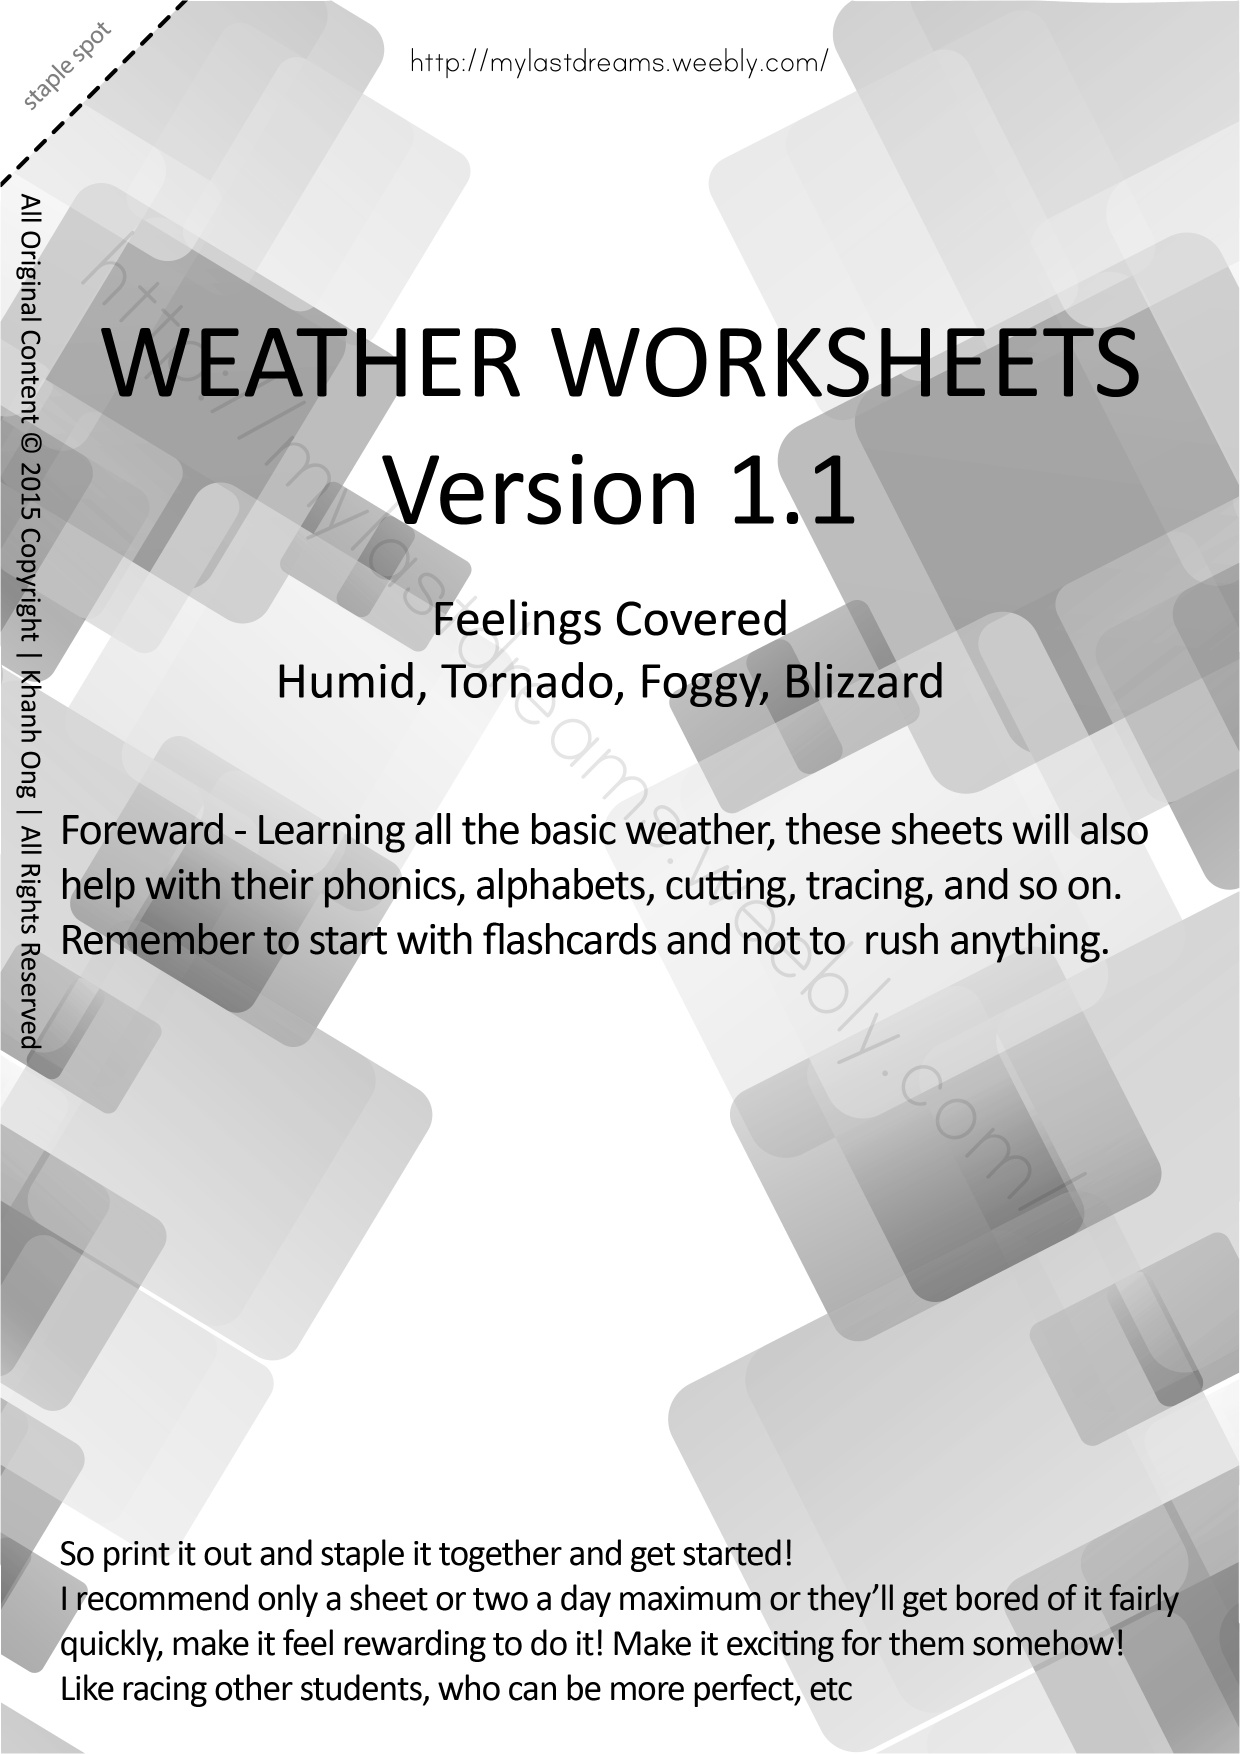 MLD - Basic Weather Worksheets - Full Set - A4 Sized